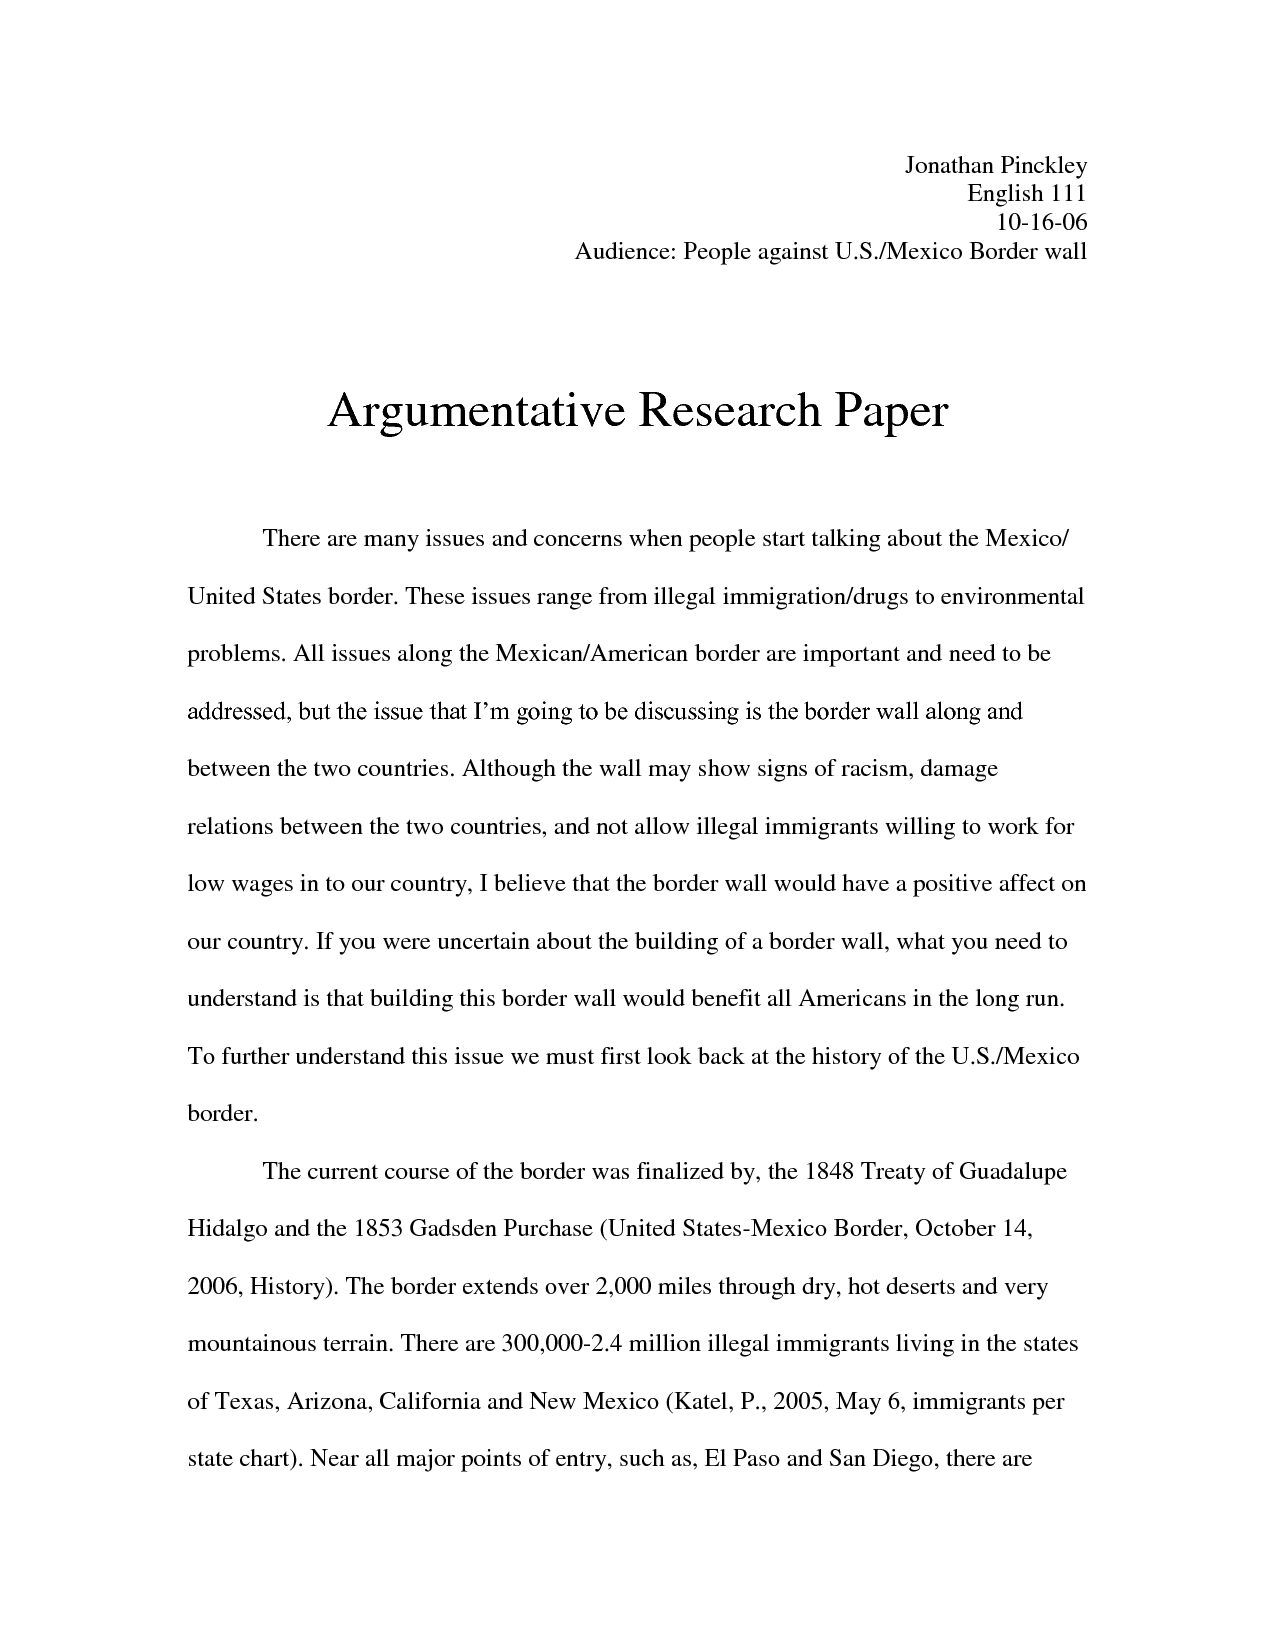 016 Research Paper Uncategorized Debate20y Argumentative Thesis High School Topics Sentence Starters Outline Worksheet Structure20 For Striking An Easy Essay Interesting Full